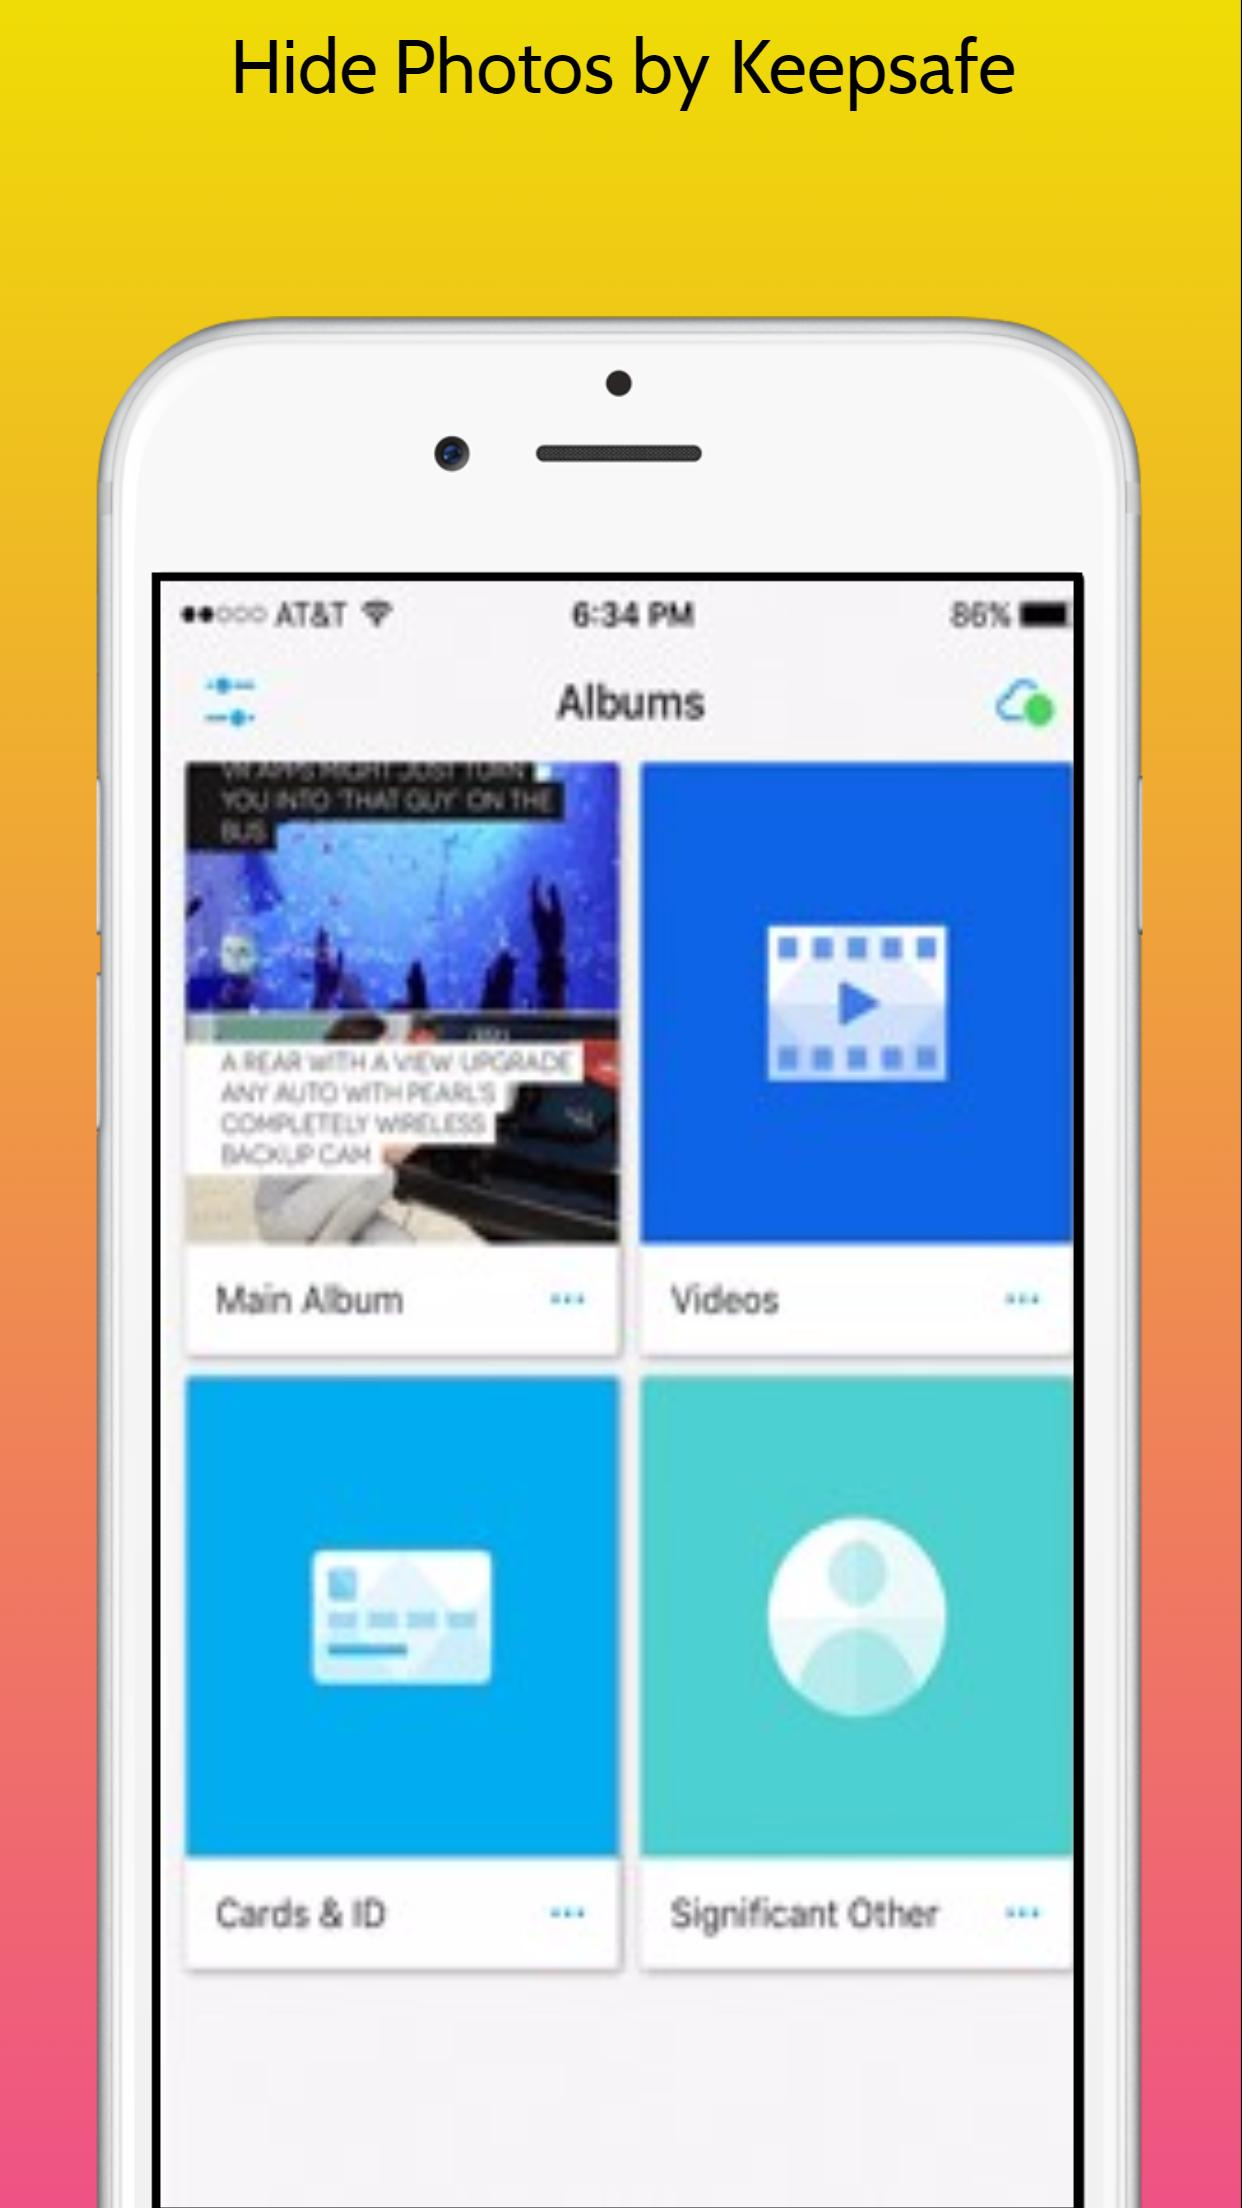 Guide For Hide Photos By Keepsafe for Android - APK Download